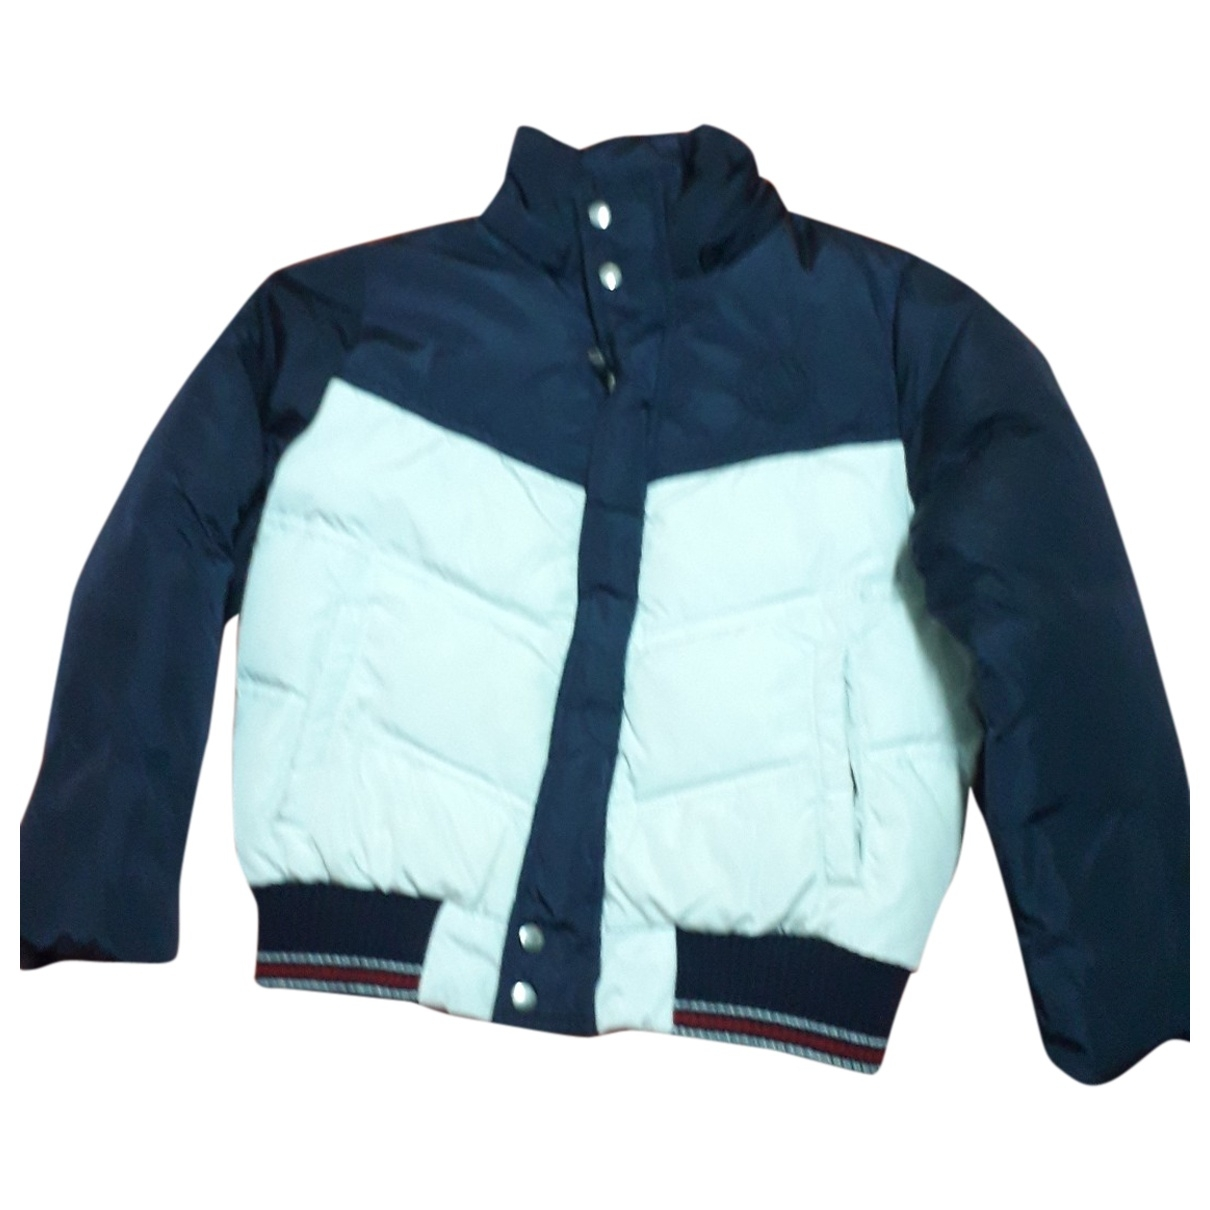 Gucci \N Blue jacket & coat for Kids 5 years - up to 108cm FR